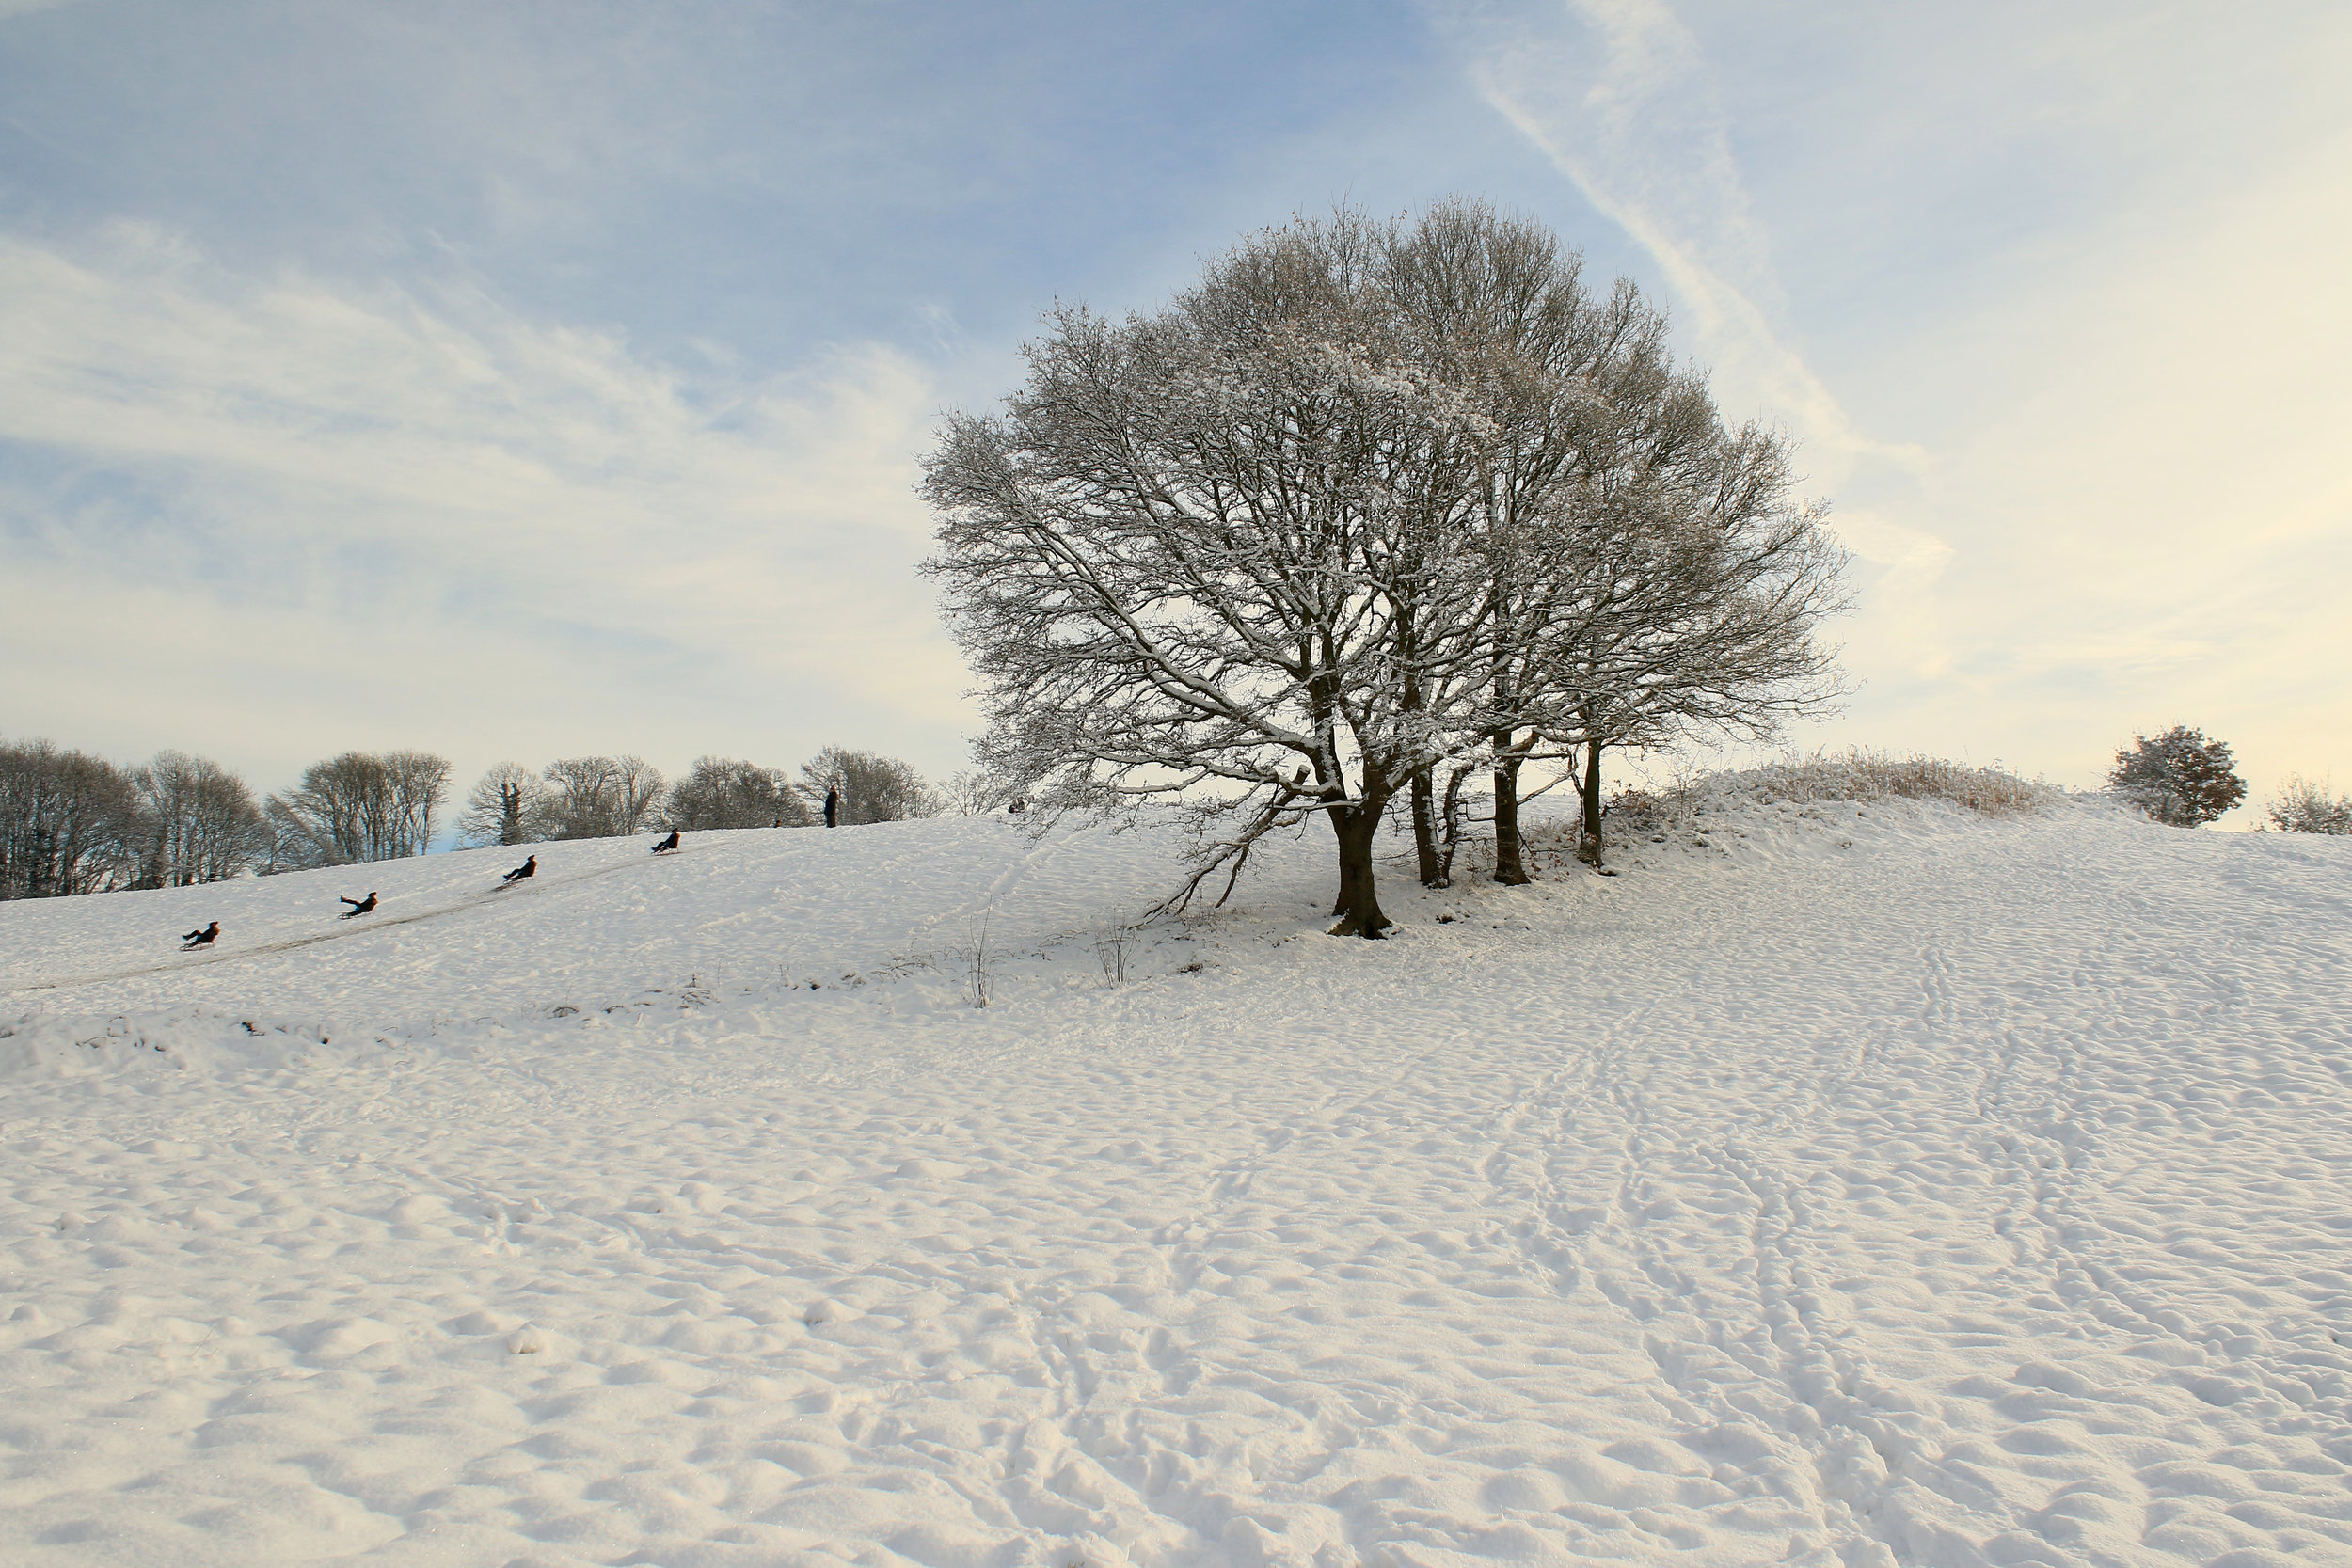 Winter Sledging and Trees